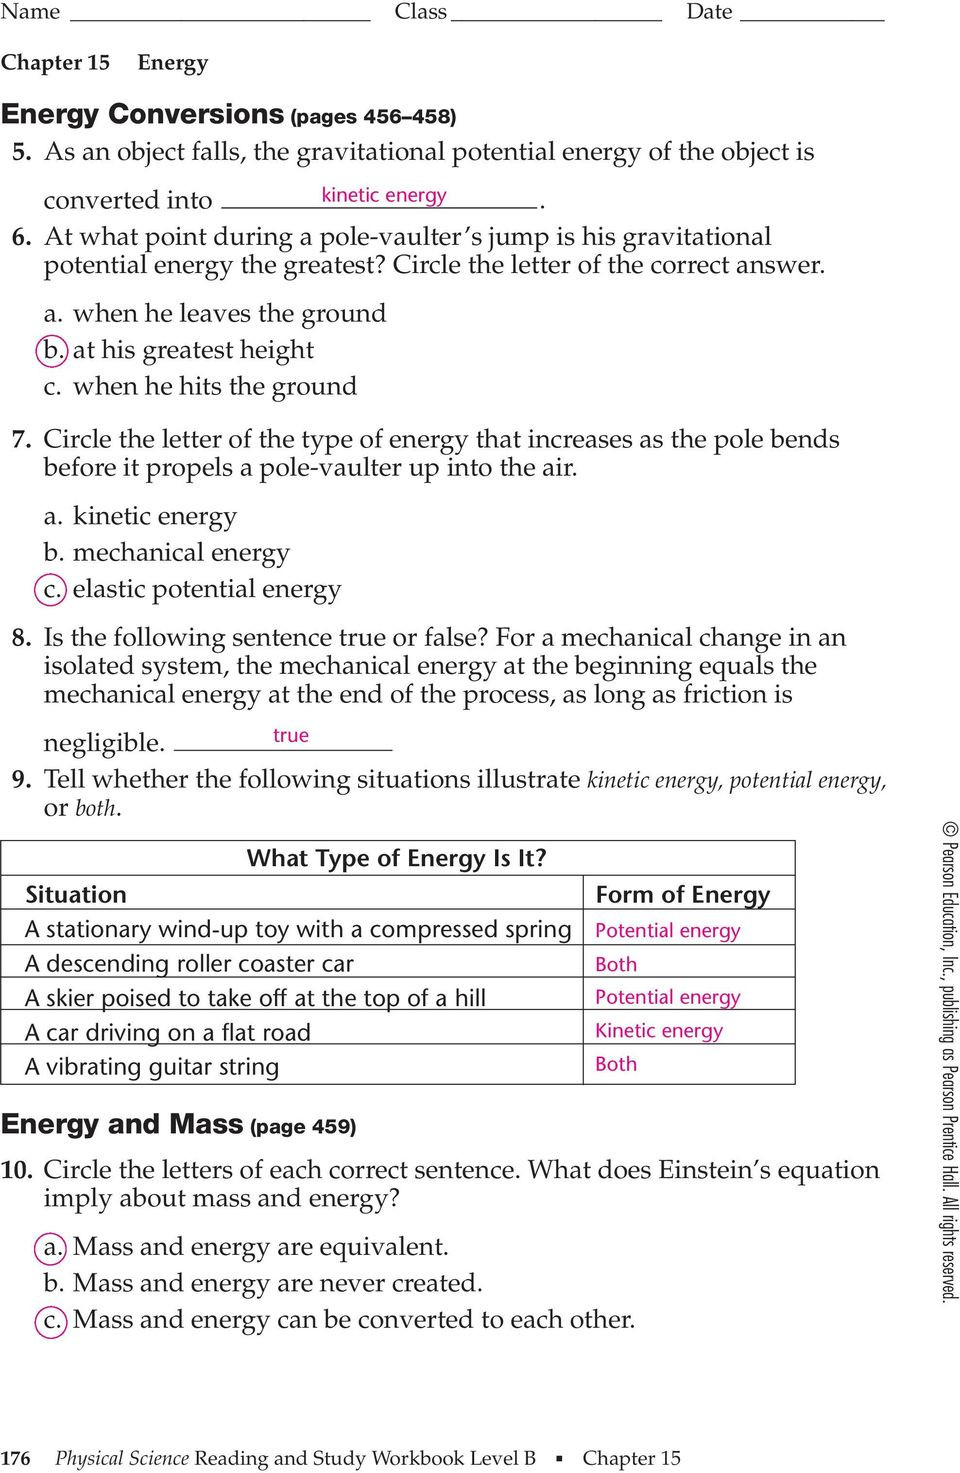 Energy Transformation Worksheet Pdf Section 15 1 Energy and Its forms Pages Pdf Free Download